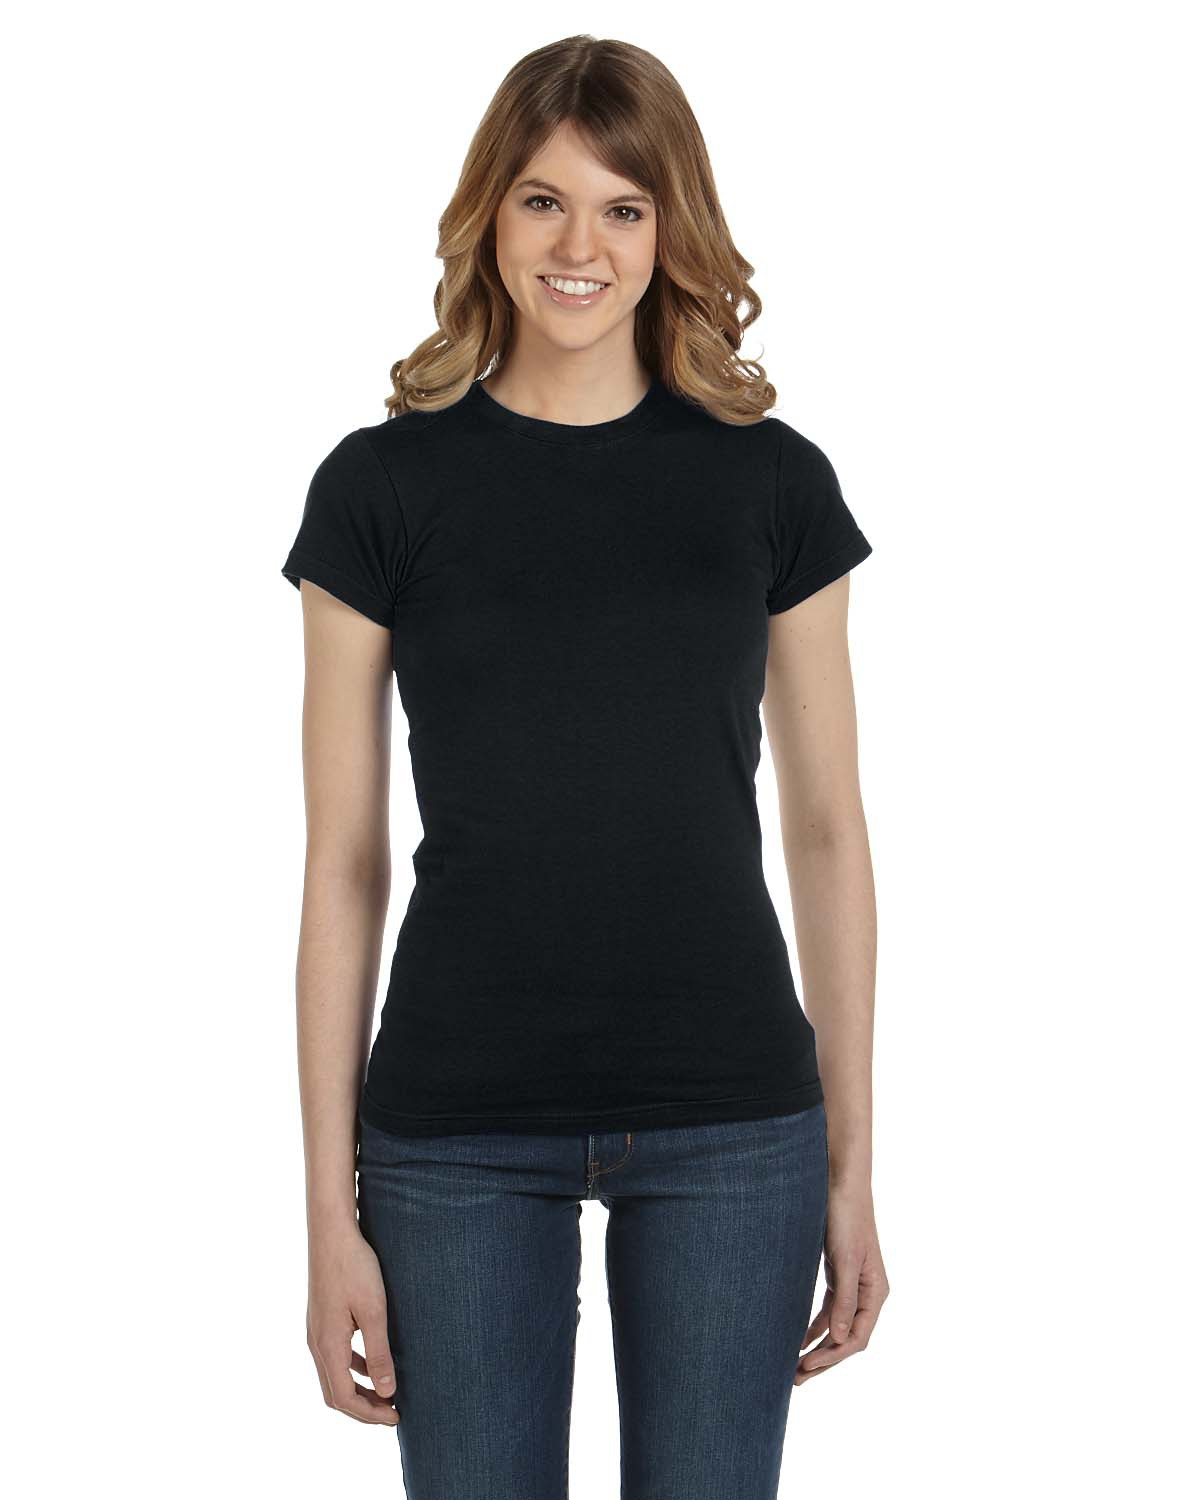 Anvil 379 - Ladies' Lightweight Fitted T-Shirt